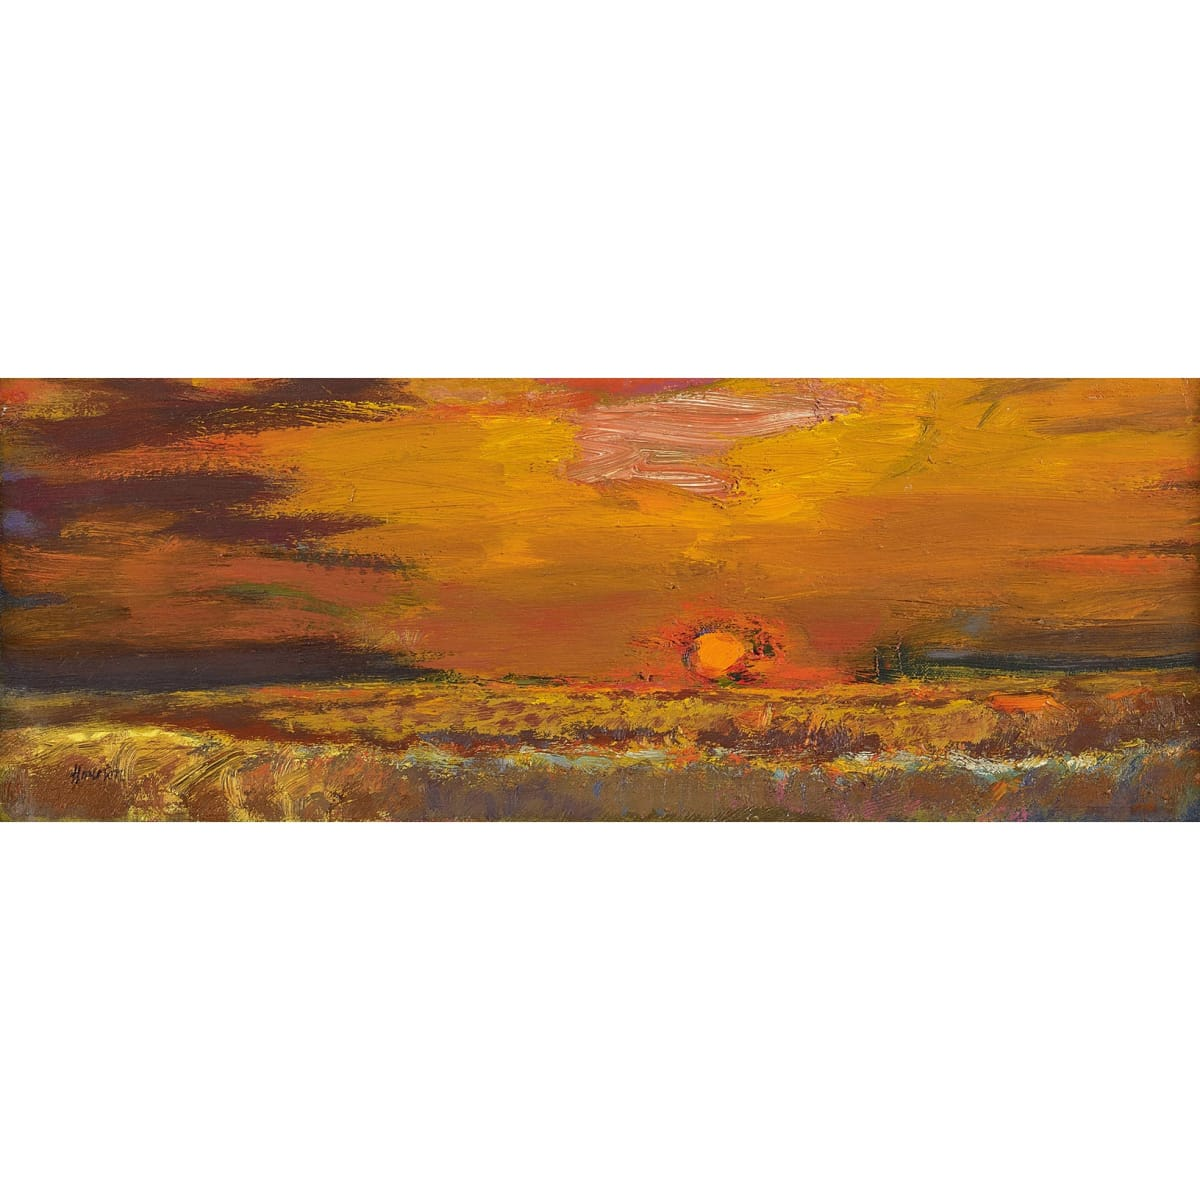 John Houston Autumn sunset, near Elie, 1975-76 signed; signed, titled and dated 1975-76 on frame verso oil on canvas 6 x 16 inches